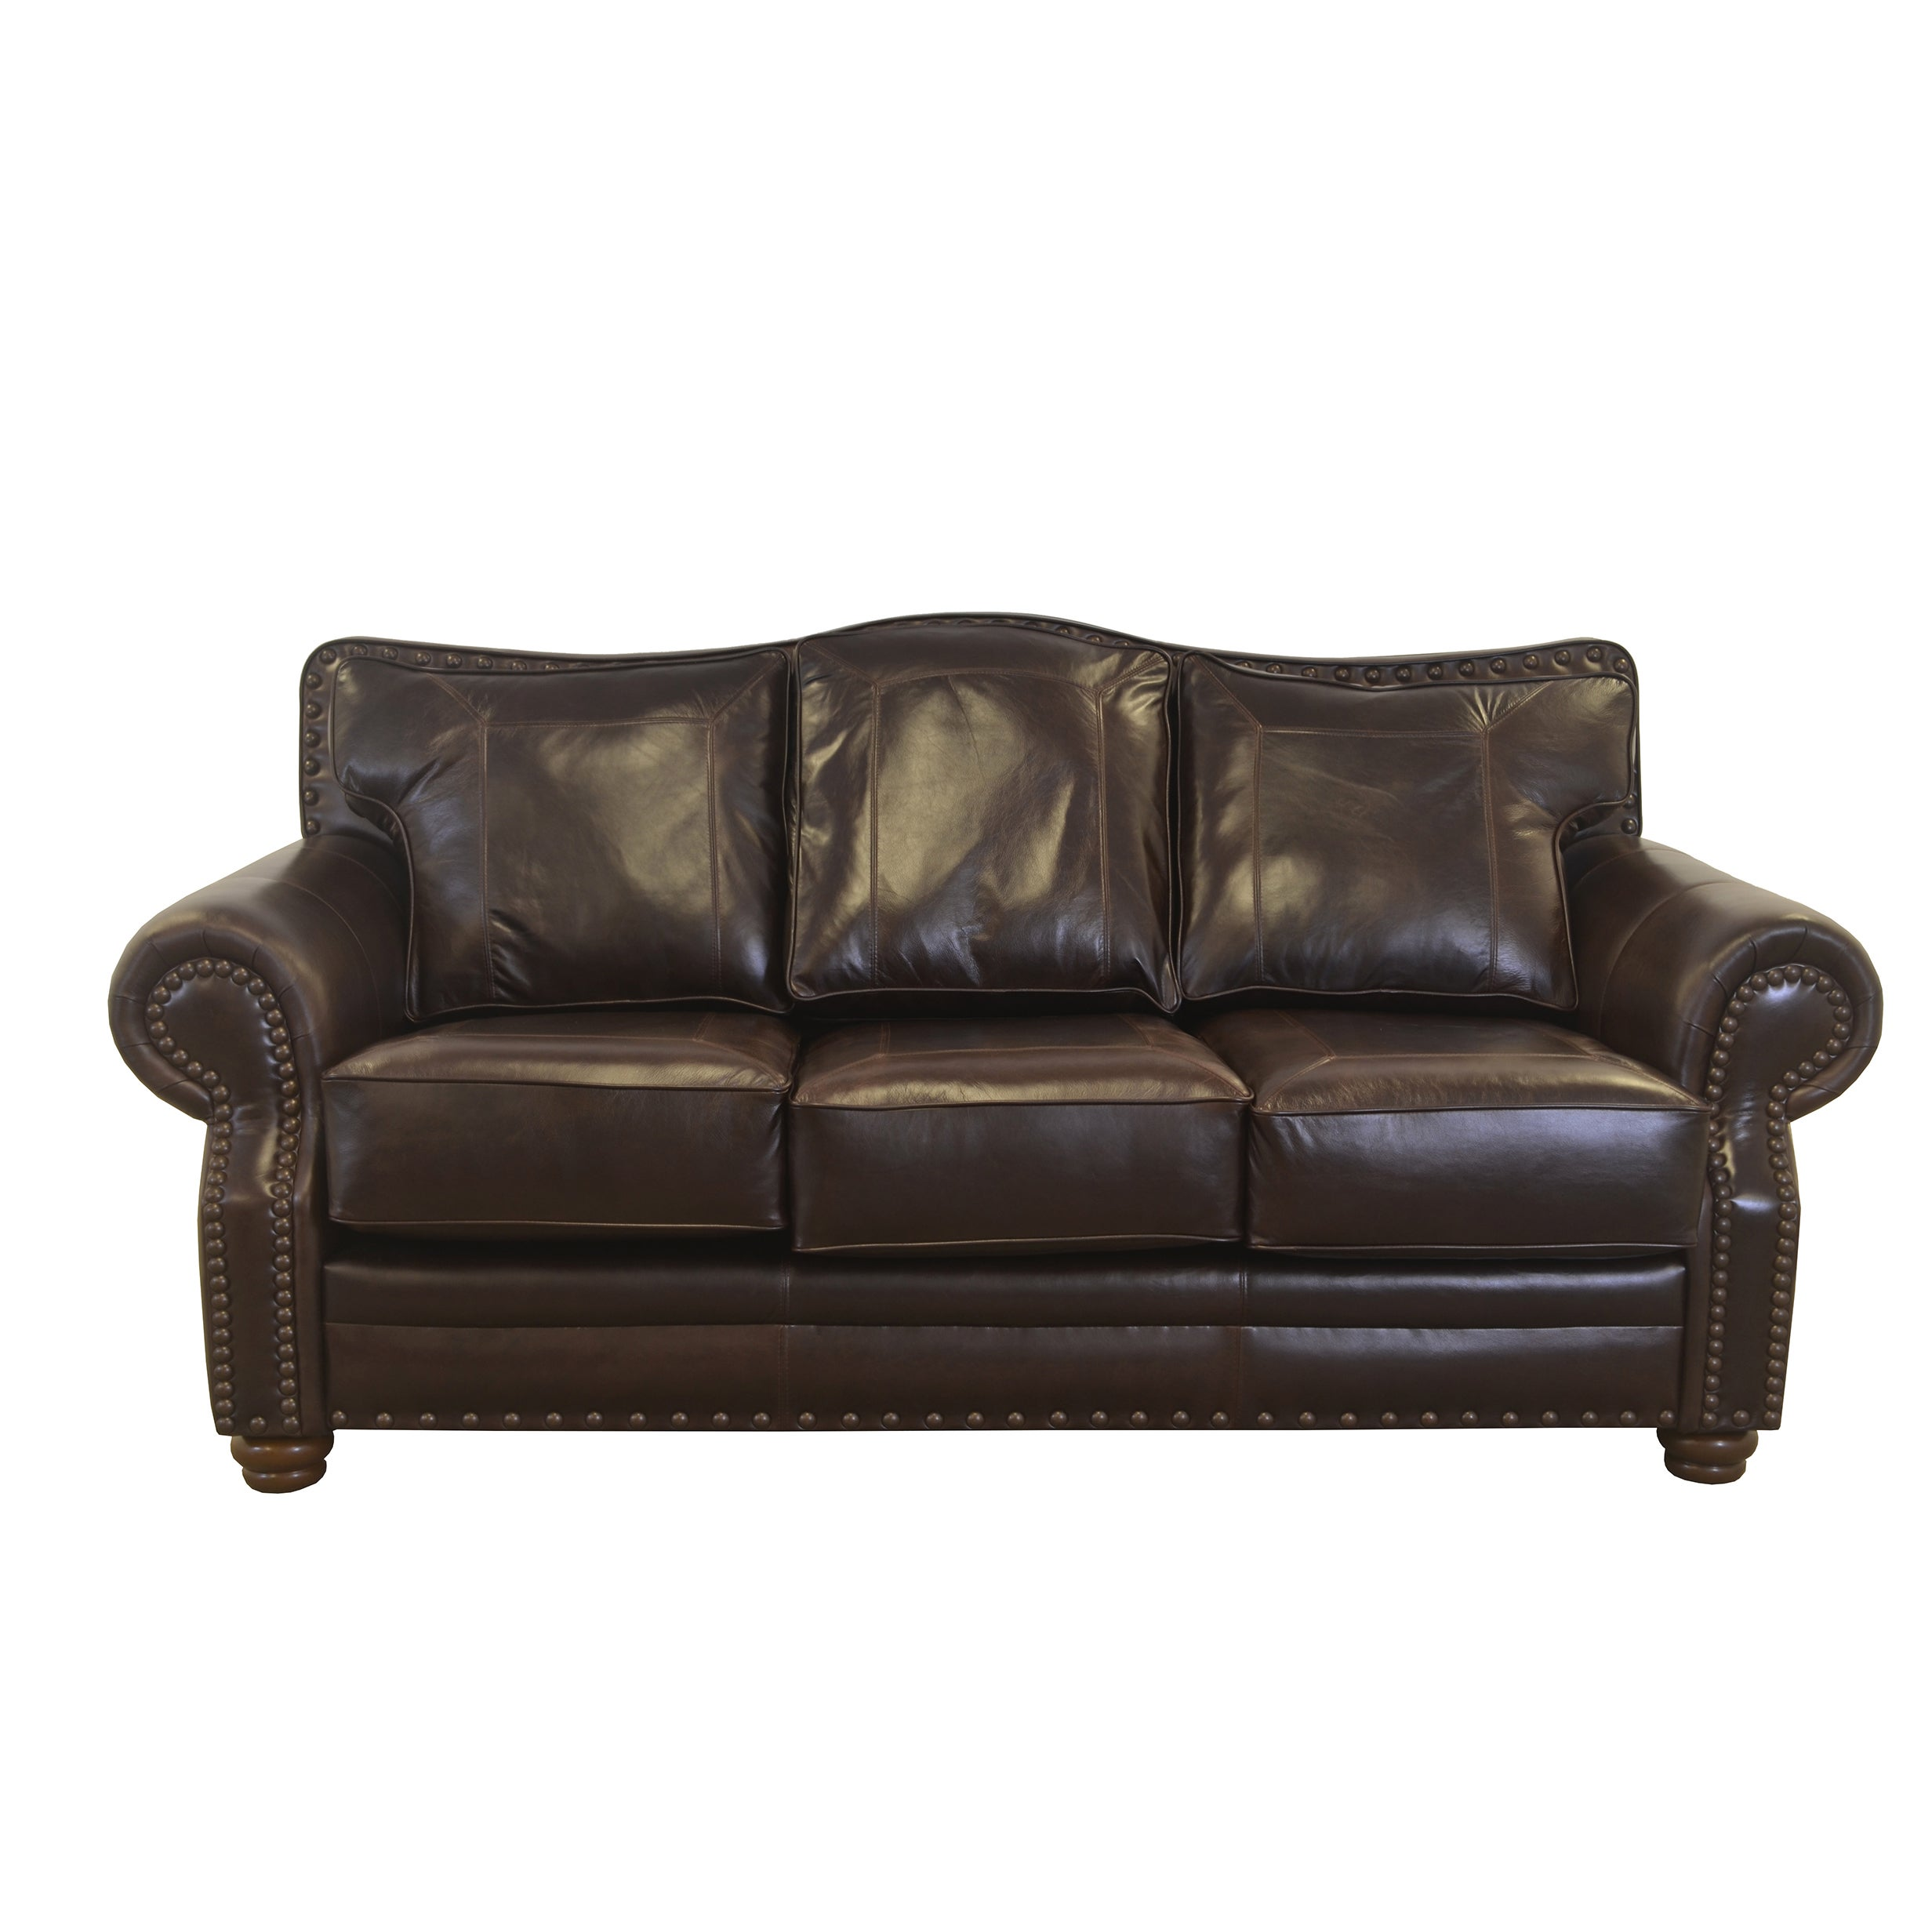 Made To Order Westford Genuine Top Grain Leather Nailhead Trimmed Sofa On Free Shipping Today 14221231